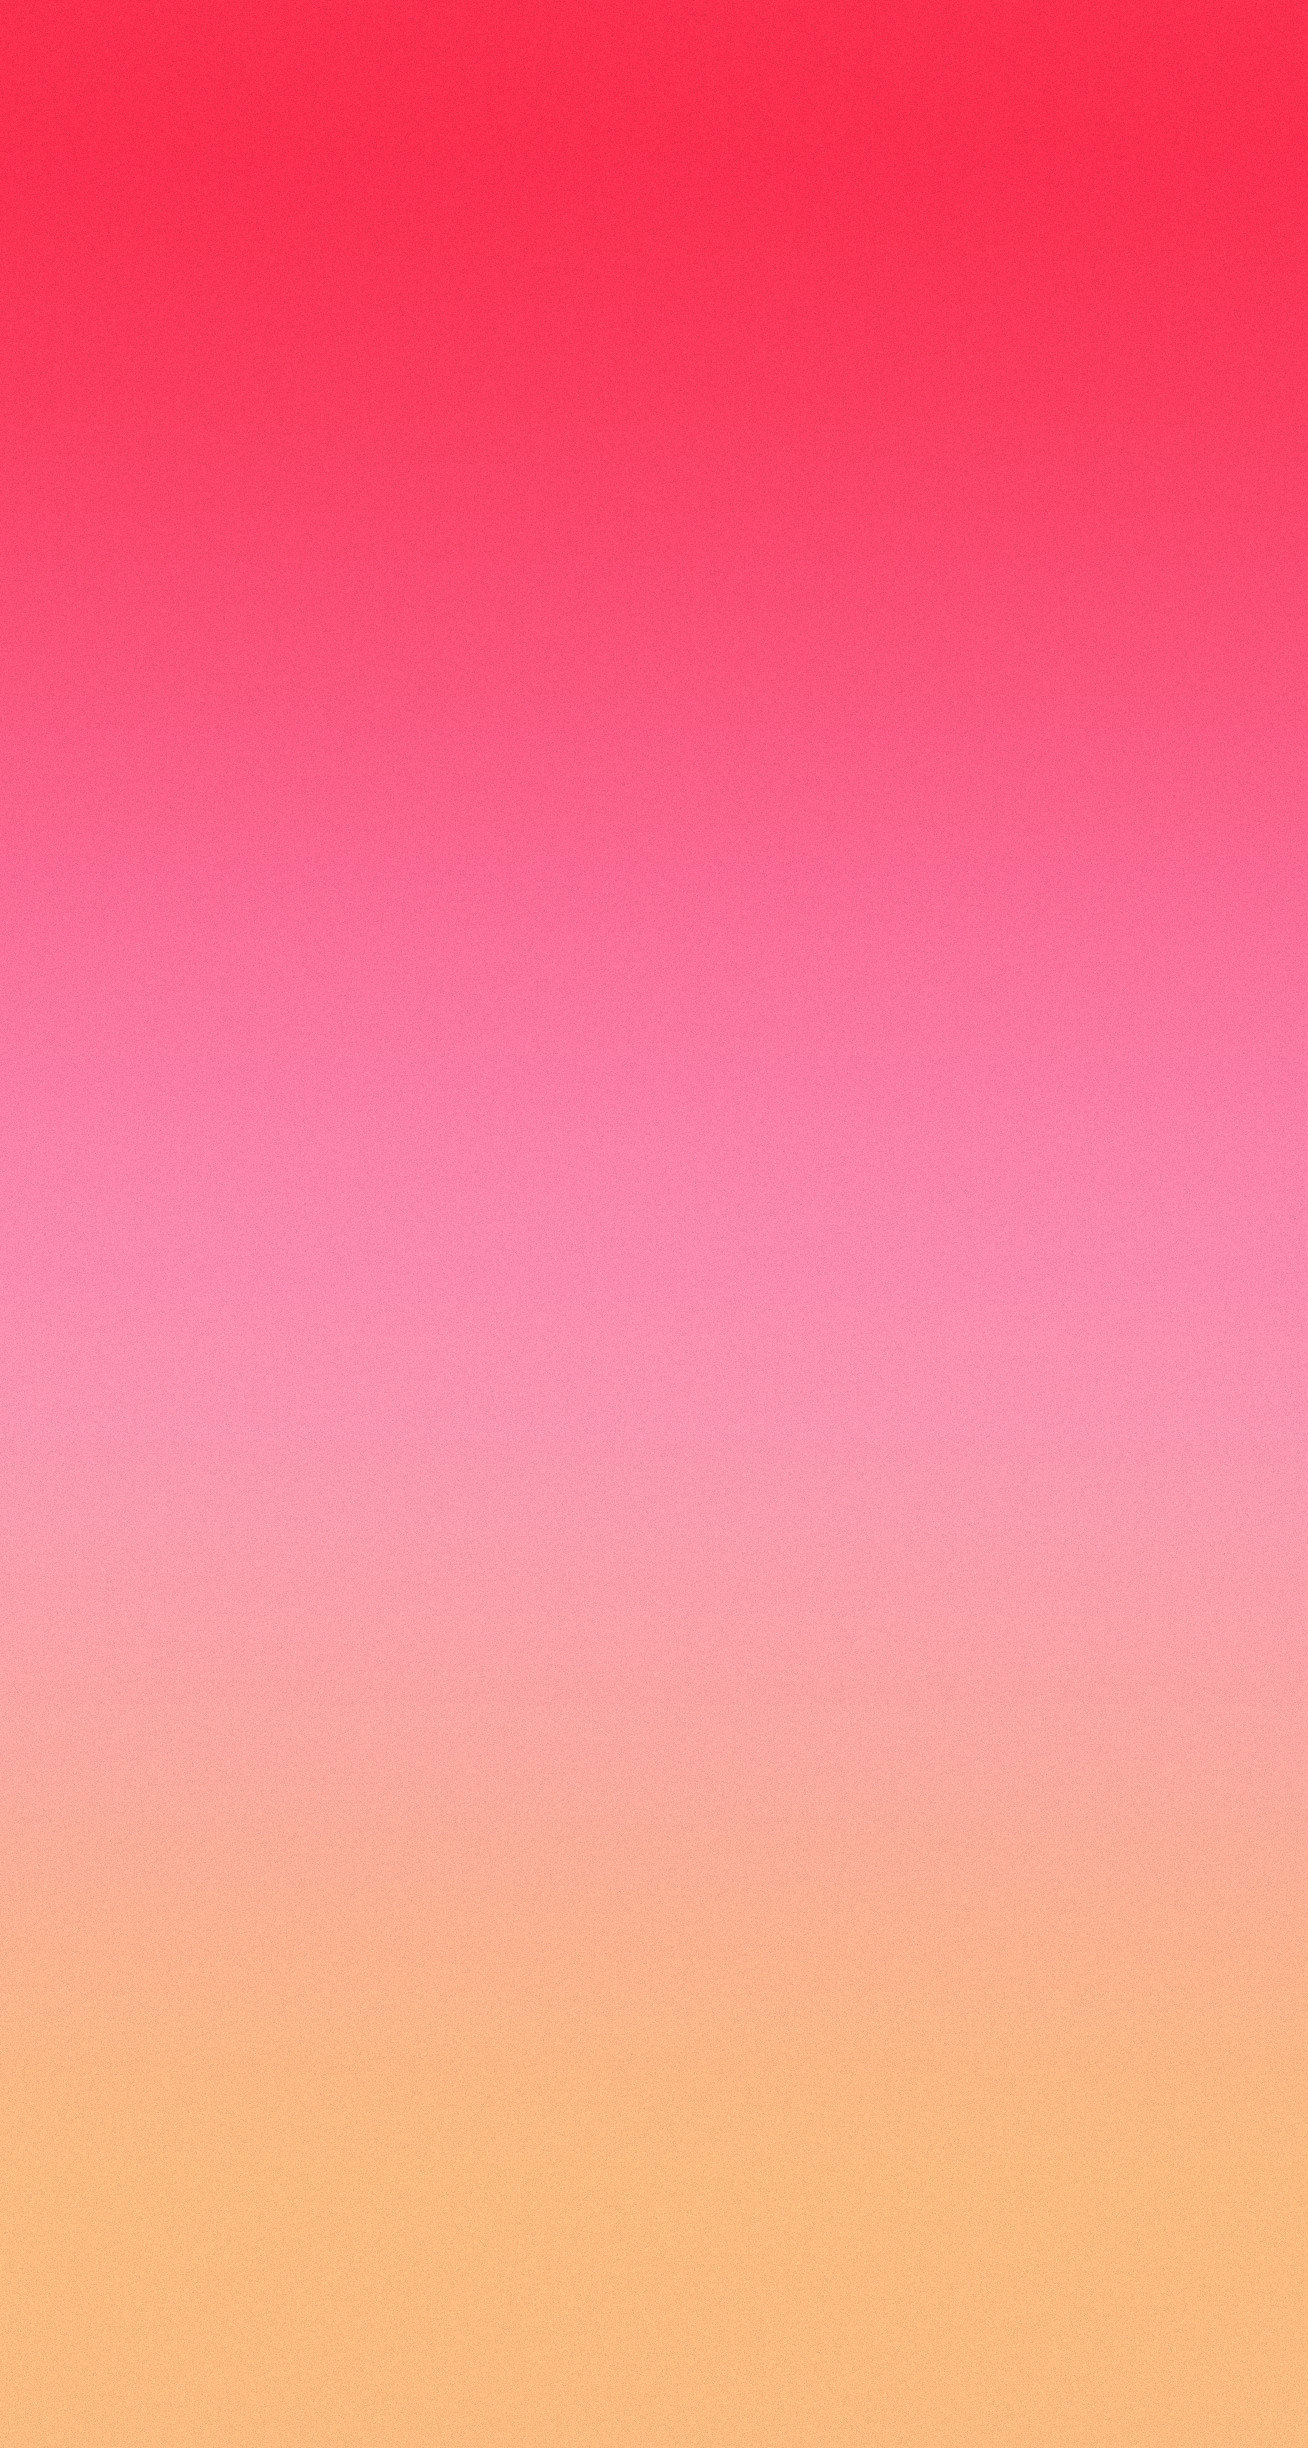 … Pink Iphone Background Tumblr Image For Iphone Wallpaper Tumblr Cool  Wallpapers | 2017 Quotes …